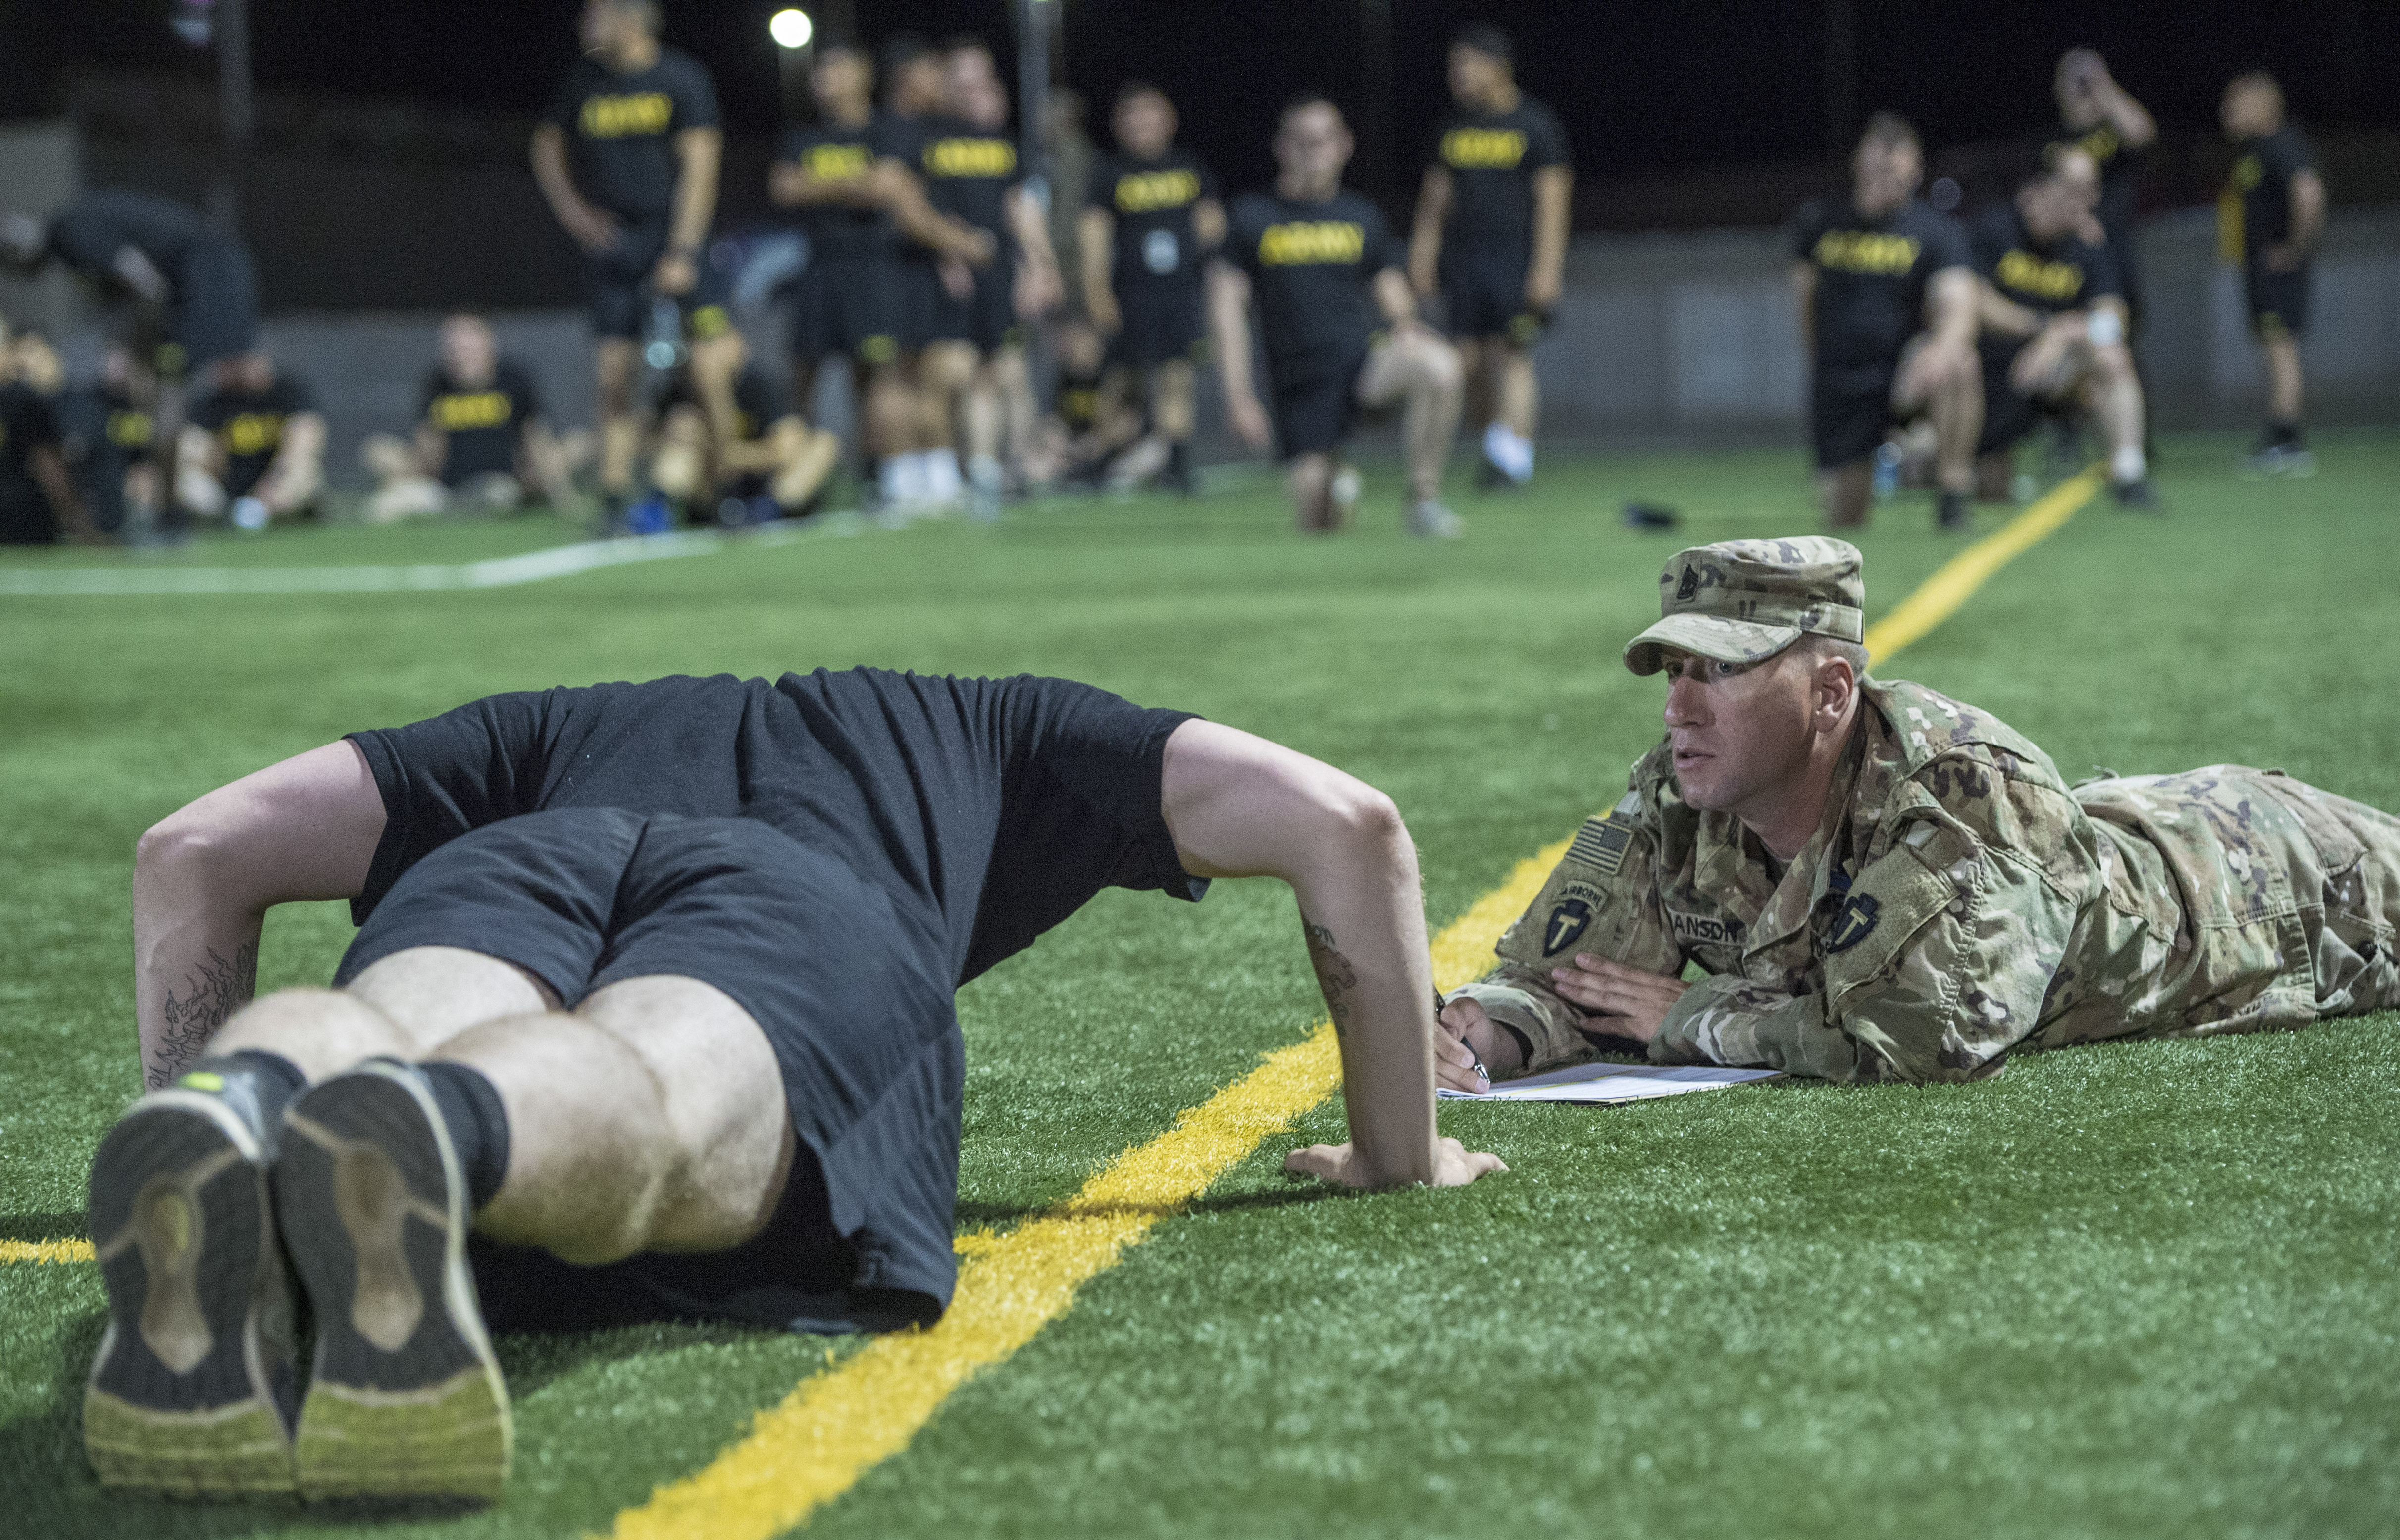 A U.S. Army Soldier assigned to Combined Joint Task Force - Horn of Africa performs a pushup during the Army Physical Fitness Test portion of an Expert Infantryman Badge evaluation at Camp Lemonnier, Djibouti, Jan. 29, 2018. After two weeks of training and five days of testing, 50 Soldiers completed the process to earn the coveted special skills badge that requires Soldiers to perform an Army Physical Fitness Test, day and night land navigation, a 12-mile forced march, and 30 individual tasks covering weapons, medical, and security patrol skills. (U.S. Air Force photo by Staff Sgt. Timothy Moore)